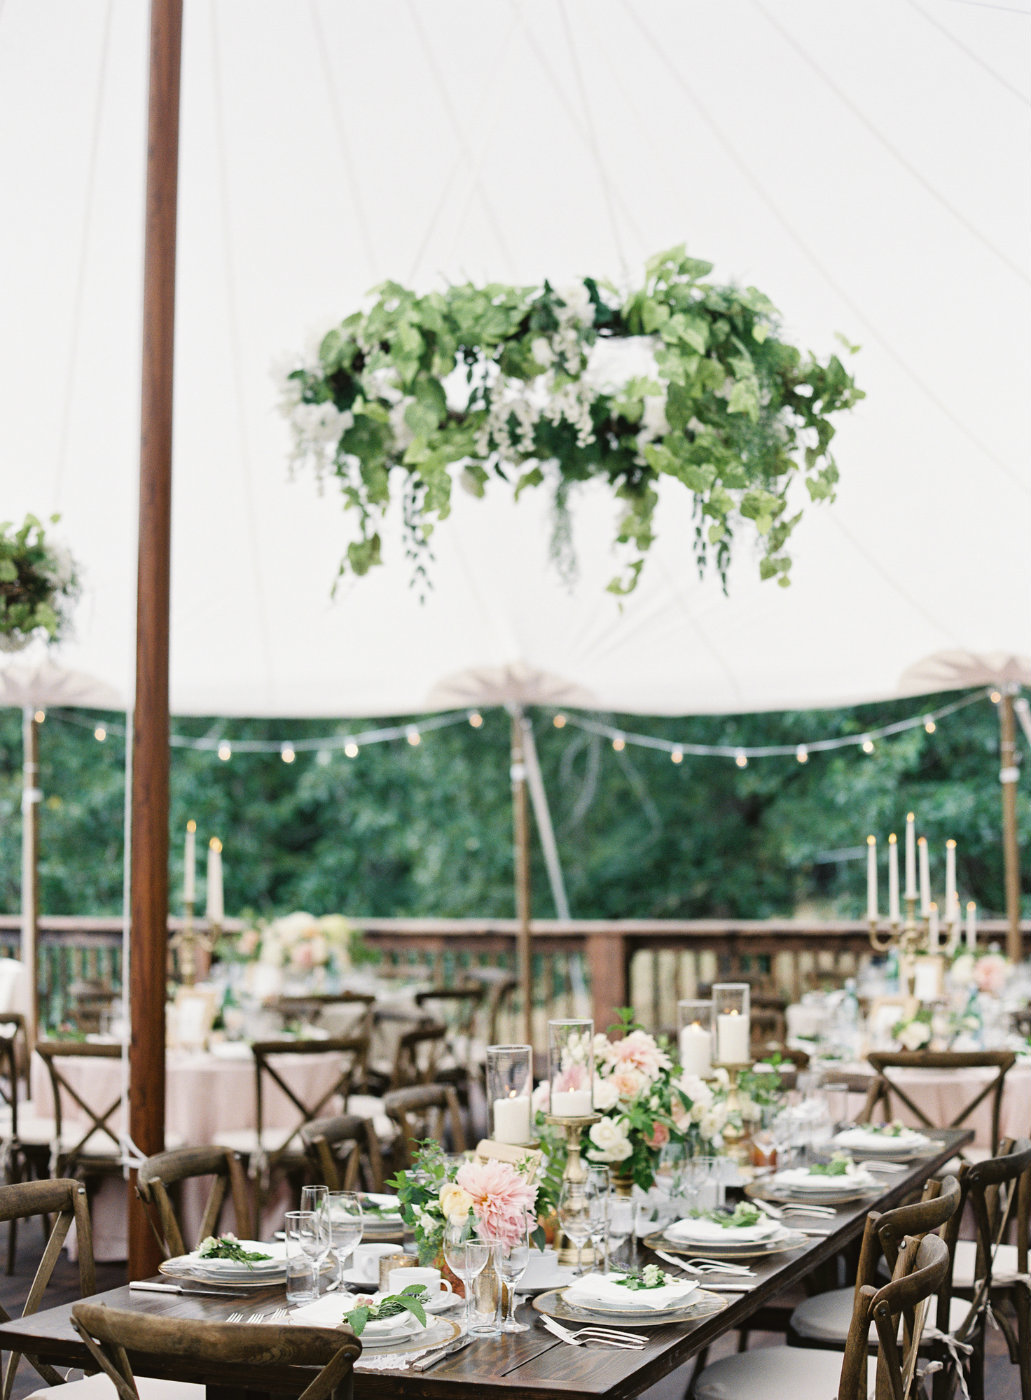 Garden tent wedding with  large floral wreath hanging installation and long wooden farm table lined with flowers and candles.